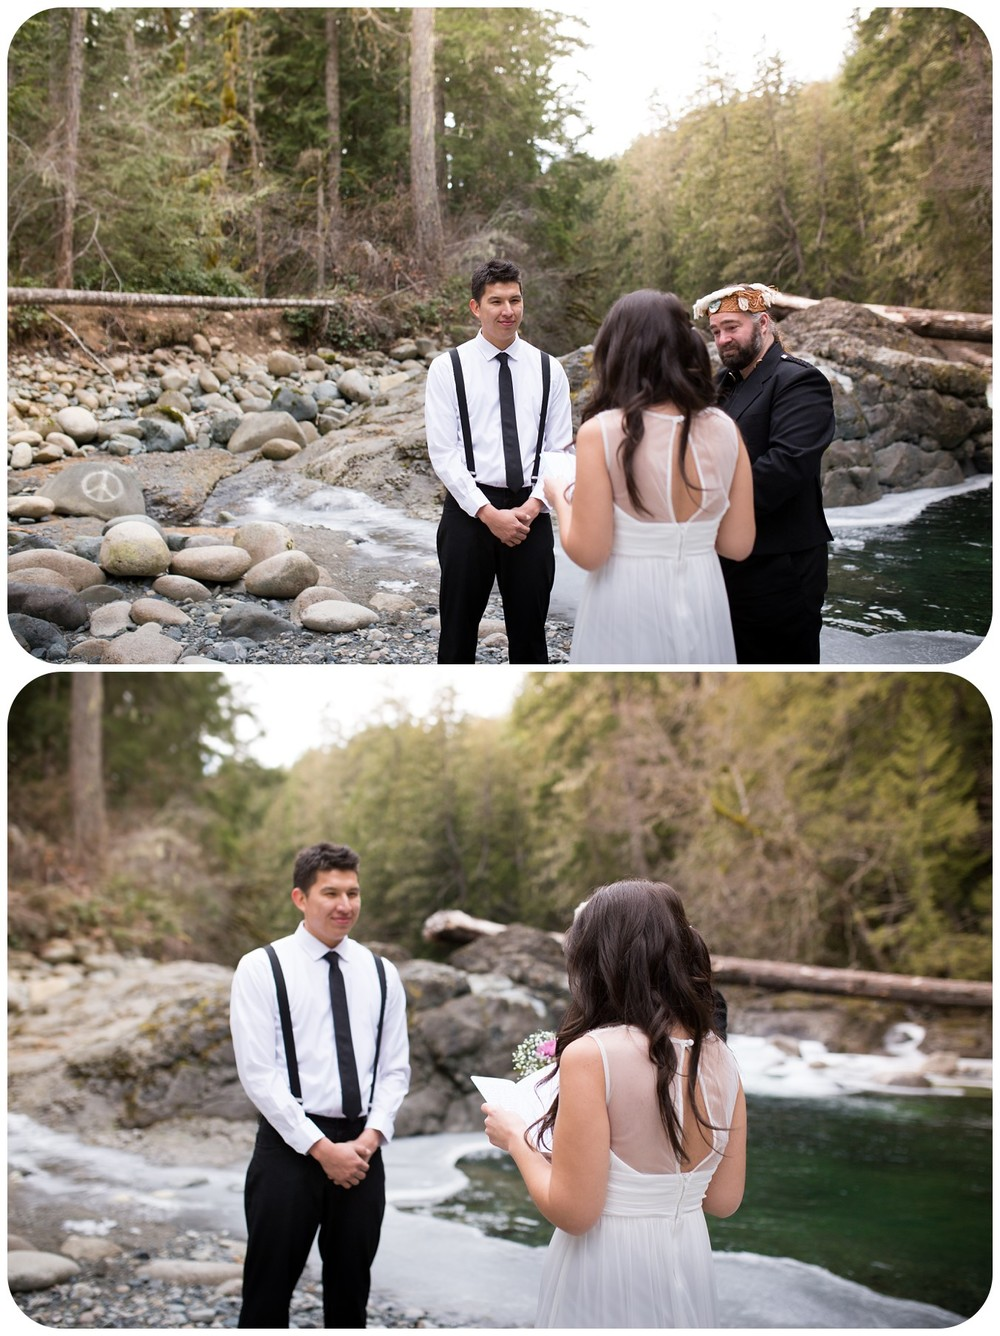 vows being read at elopement ceremony, englishman river falls wedding